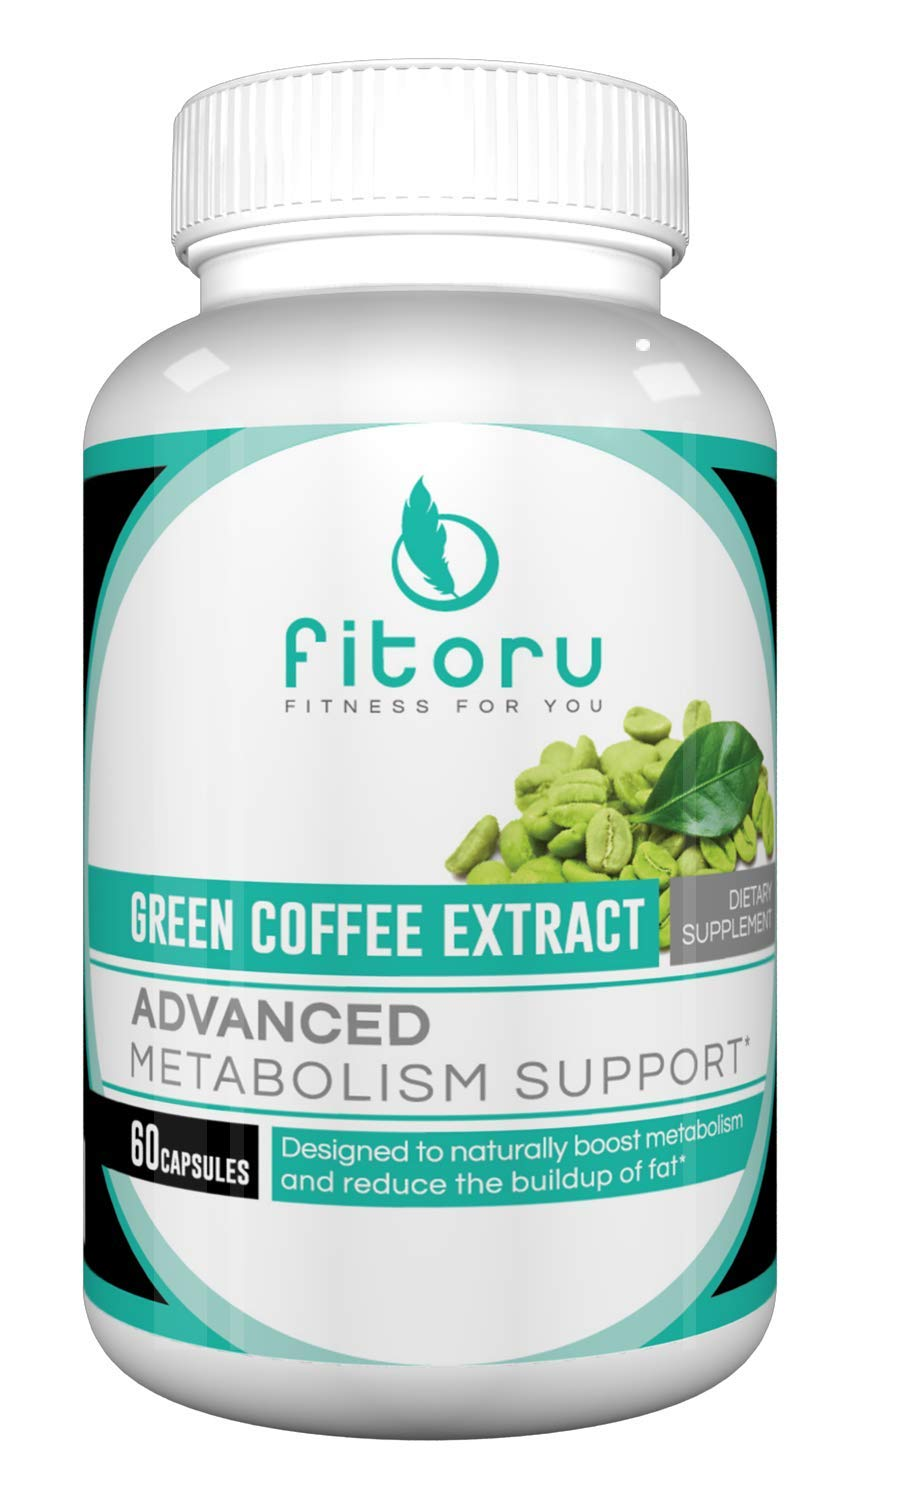 Fitoru Premium Green Coffee Bean Extract - 100% Natural and GMO Free with All-New Metabolism and Fat Loss Blend